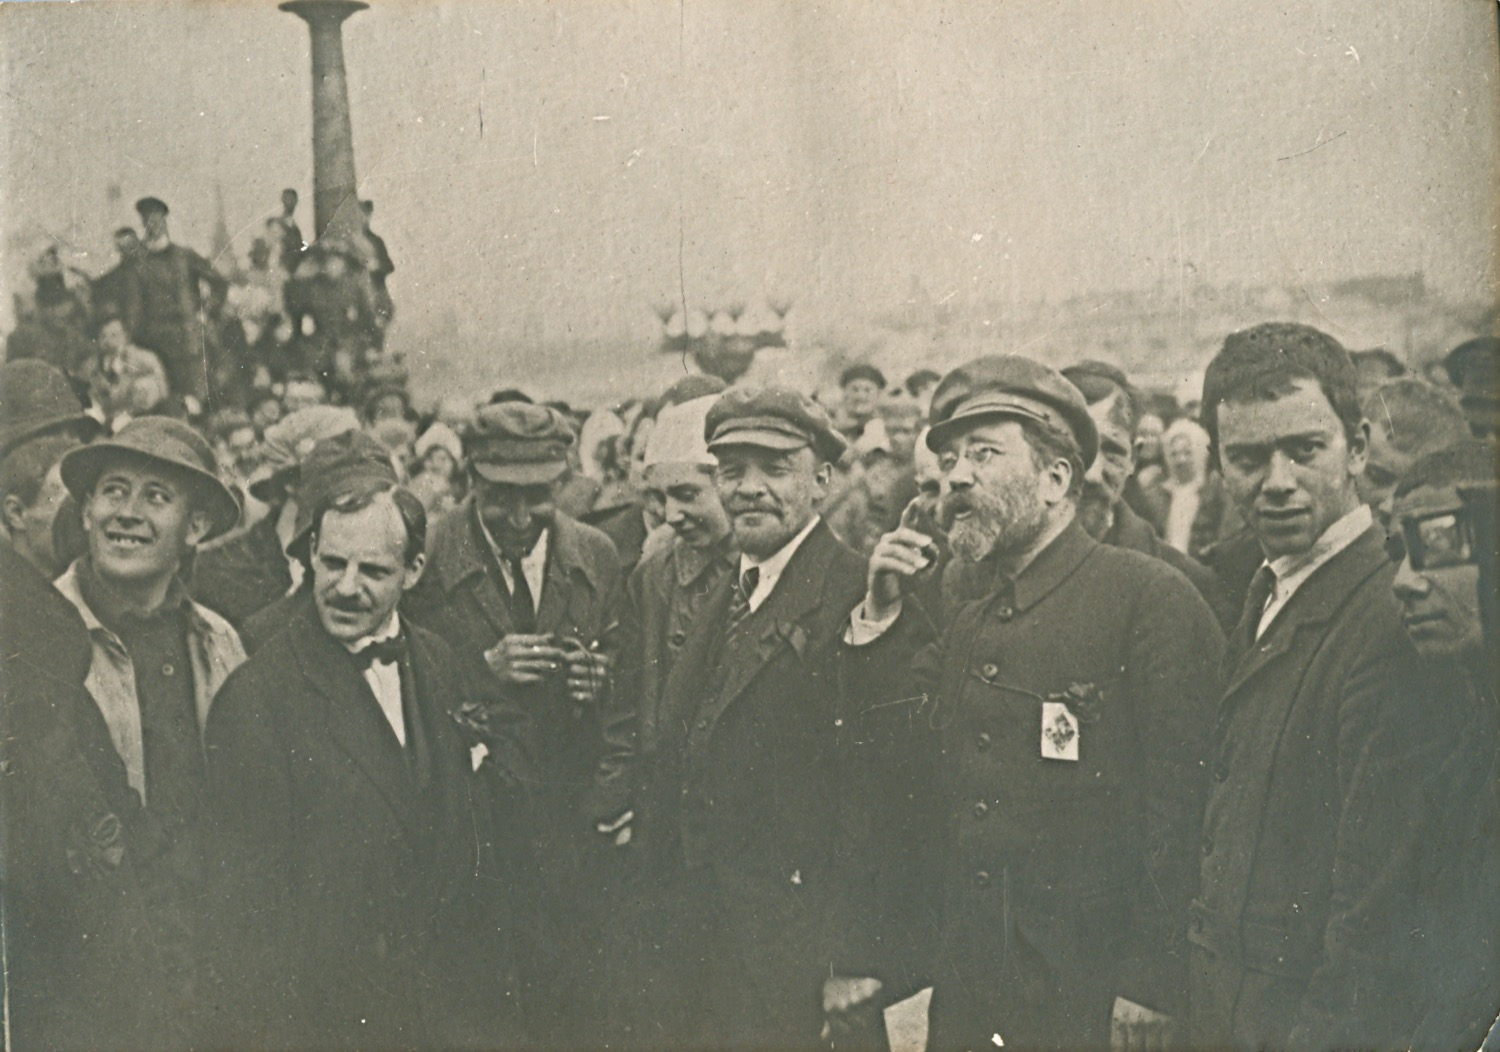 """Photo. V. I. Lenin at the laying of the monument """"Liberated Labor"""" on the Prechistenskaya embankment. RSFSR, Moscow. May 1, 1920. Photographer A. I. Savelyev"""